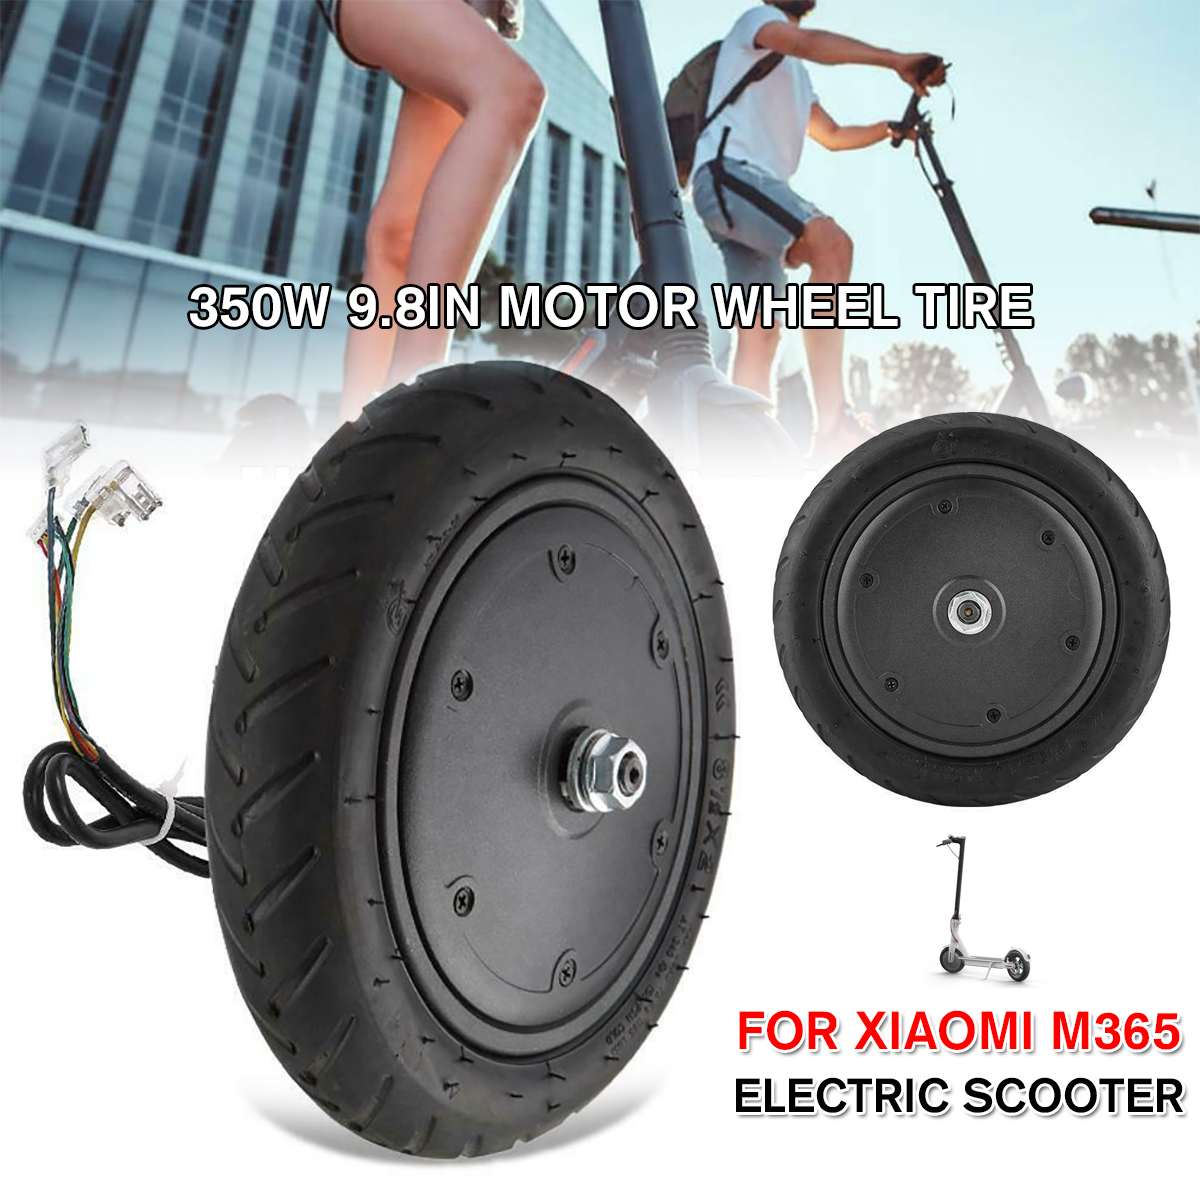 Electric Scooter Motor Explosion Proof Wheels 9.8inch 350W Tire for Xiaomi M365 Electric Scooter Replacement Parts